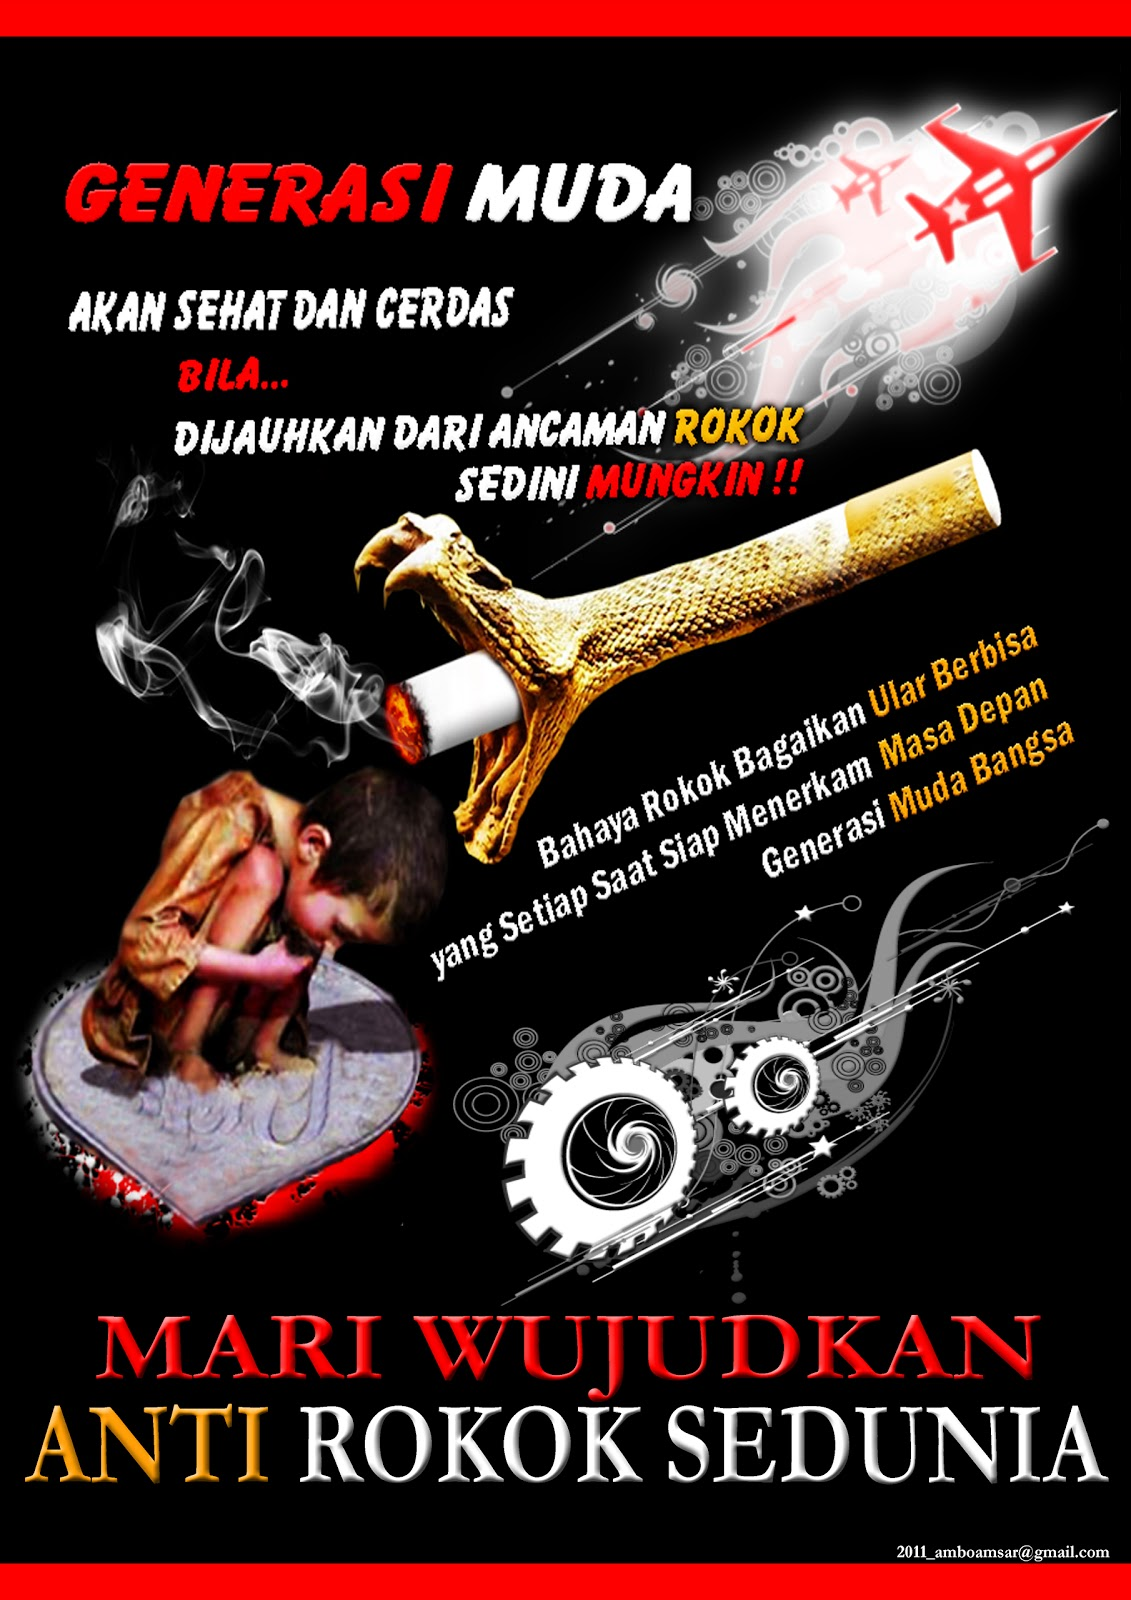 Download Wallpaper Gambar Rokok - Gudang Wallpaper